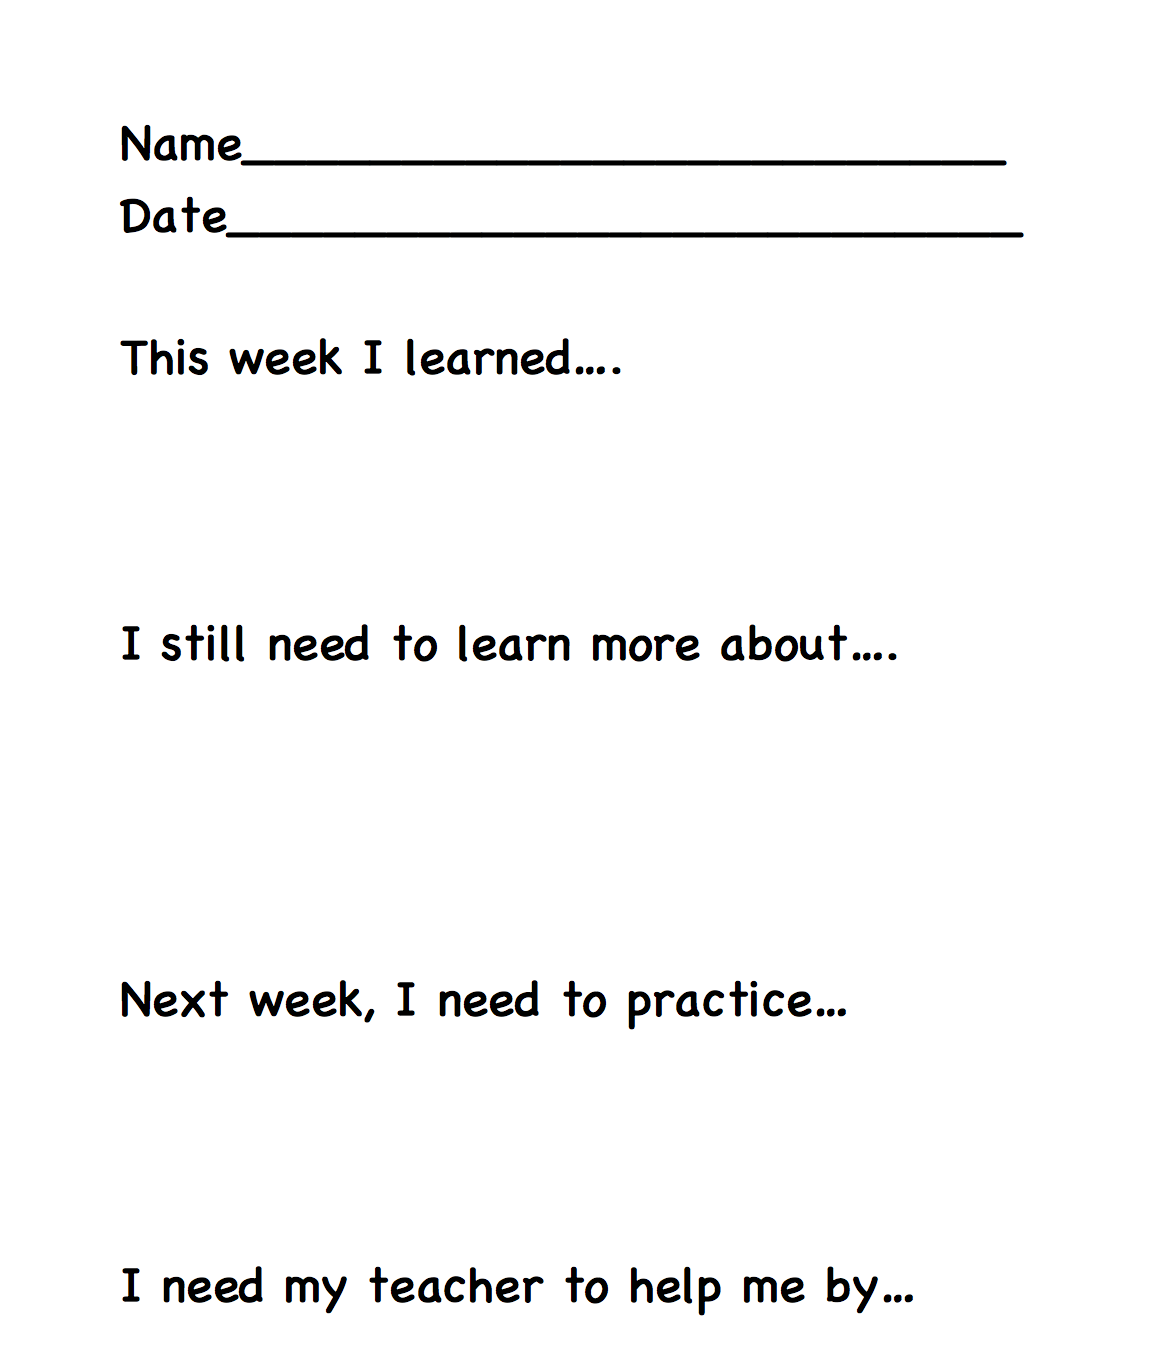 Student Reflections on Weekly Progress